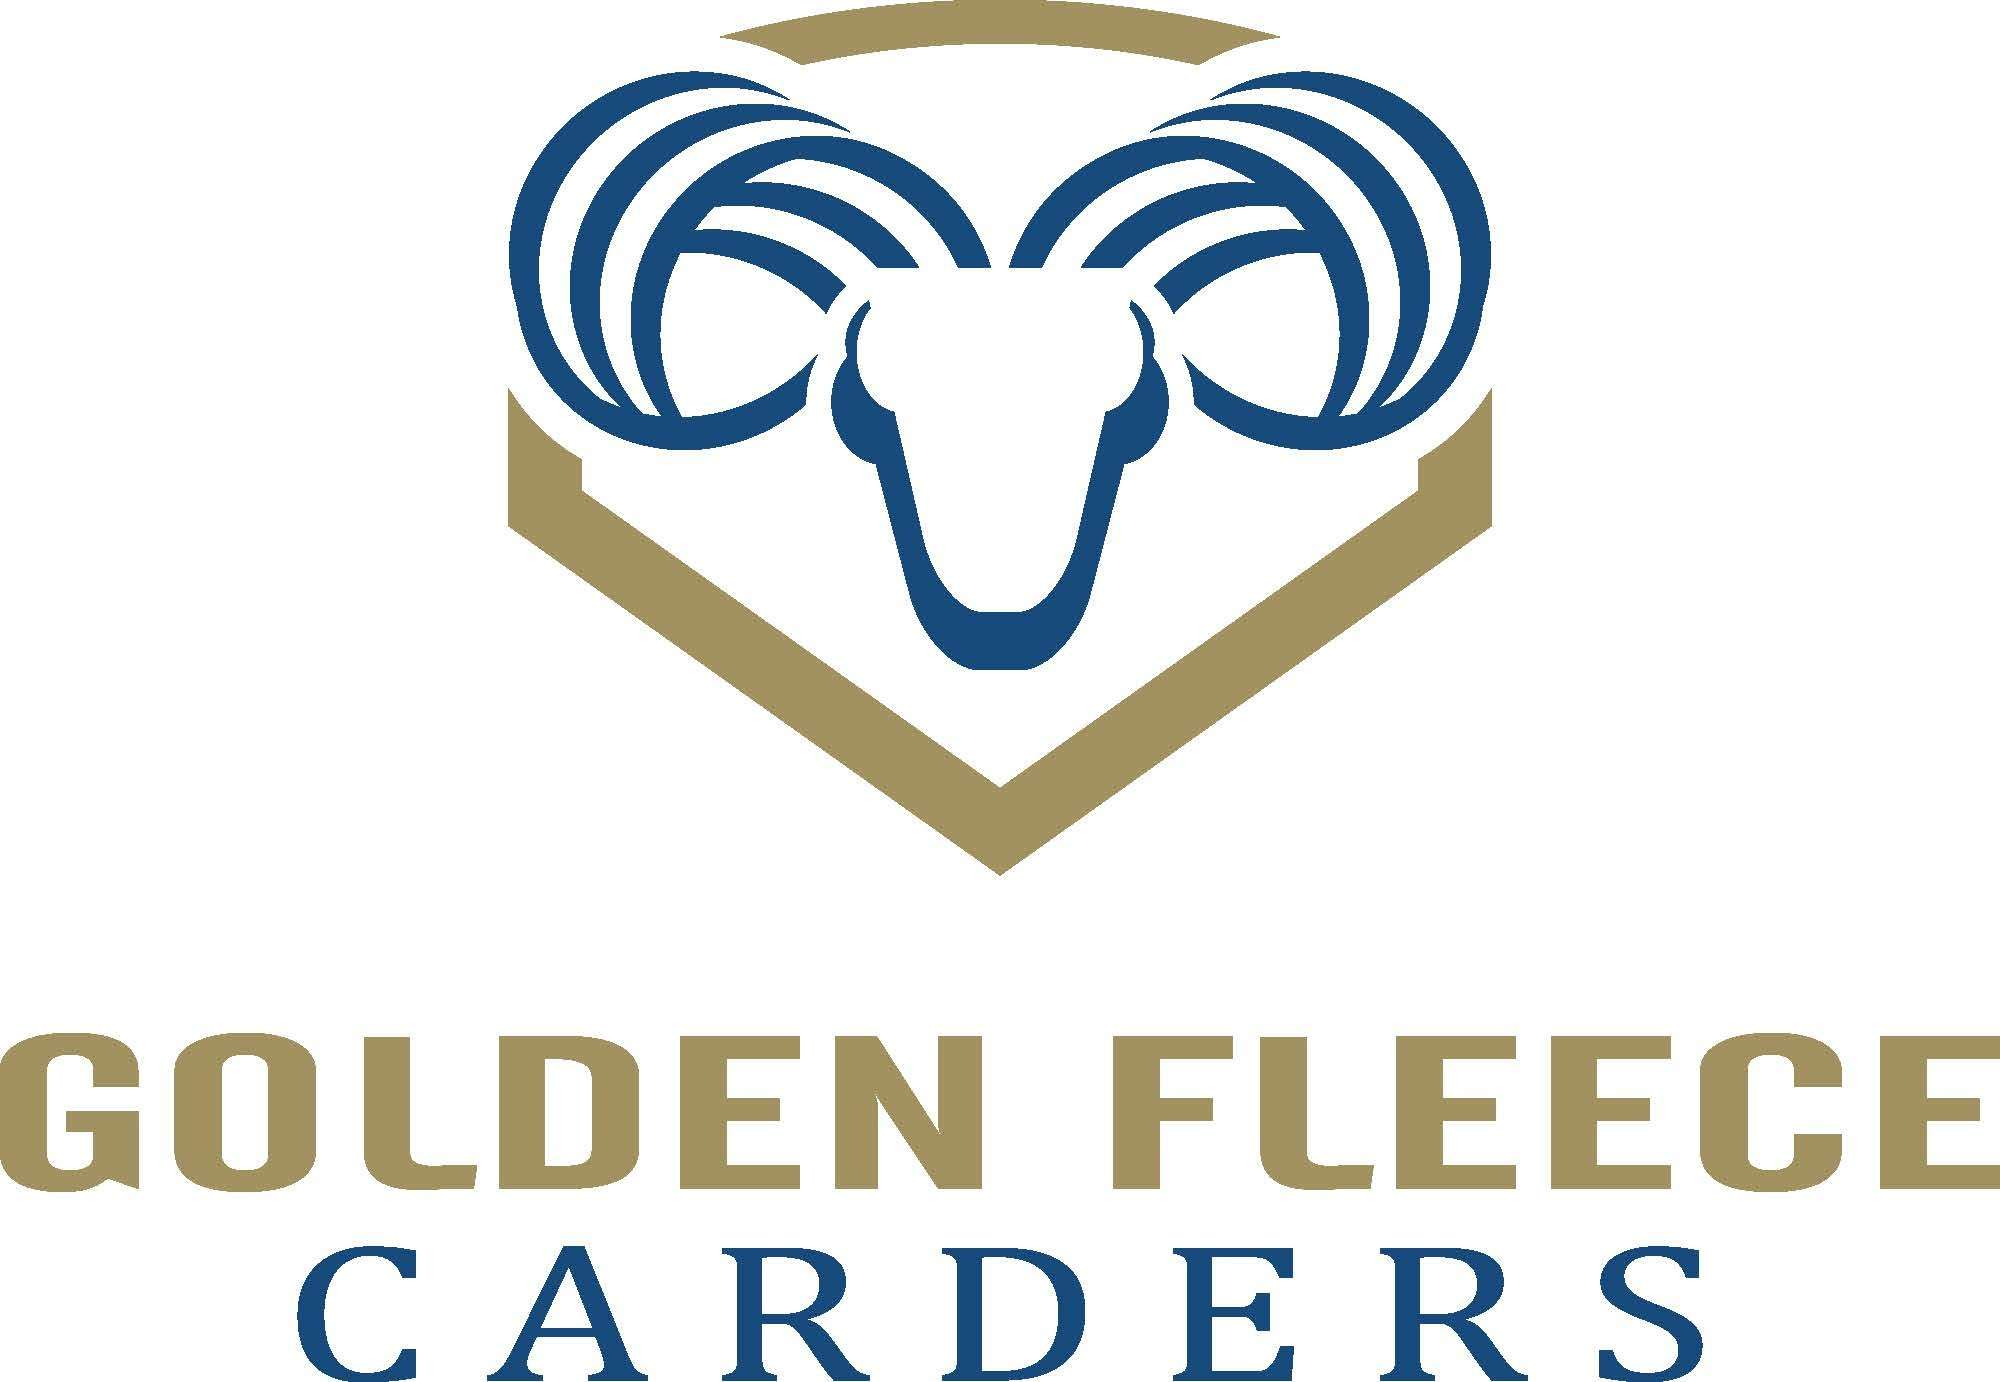 Golden Fleece Carders